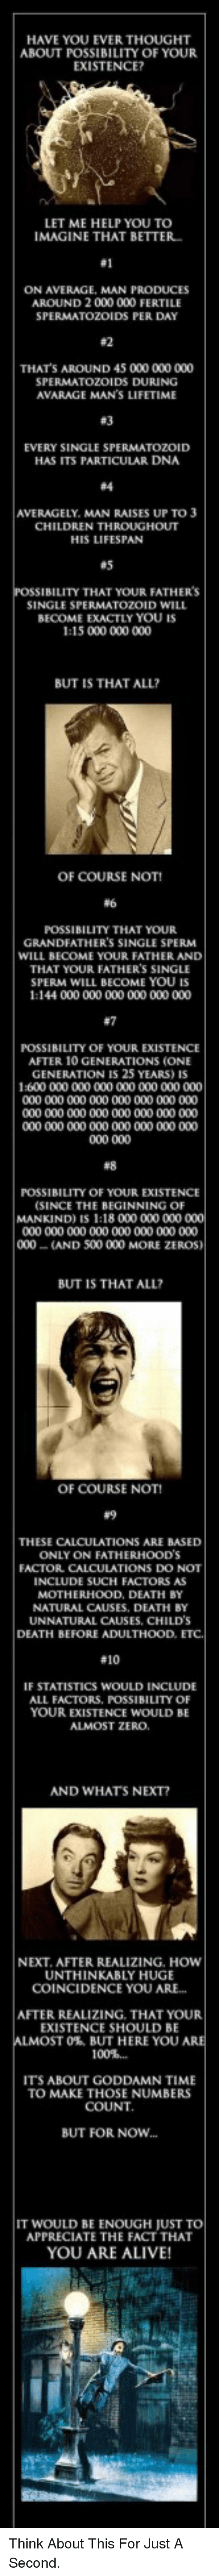 Alive, Children, and Zero: HAVE YOU EVER THOUGHT  ABOUT POSSIBILITY OF YOUR  EXISTENCE?  LET ME HELP YOU TO  IMAGINE THAT BETTER  #1  ON AVERAGE, MAN PRODUCES  AROUND 2 000 000 FERTILE  SPERMATOZOIDS PER DAY  #2  THAT'S AROUND 45 000 000 000  SPERMATOZOIDS DURING  AVARAGE MAN'S LIFETIME  #3  EVERY SINGLE SPERMATOZOID  HAS ITS PARTICULAR DNA  #4  AVERAGELY. MAN RAISES UP TO 3  CHILDREN THROUGHOUT  HIS LIFESPAN  #5  SIBILITY THAT YOUR FATHER'S  SINGLE SPERMATOZOID WILL  BECOME EXACTLY YOU IS  1:15 000 000 000  BUT IS THAT ALL?  OF COURSE NOT!  #6  POSSIBILITY THAT YOUR  GRANDFATHER'S SINGLE SPERM  WILL BECOME YOUR FATHER AND  THAT YOUR FATHER'S SINGLE  SPERM WILL BECOME YOU IS  1:144 000 000 000 000 000 000  #7  POSSIBILITY OF YOUR EXISTENCE  AFTER 10 GENERATIONS (ONE  GENERATION IS 25 YEARS) IS  1:600 000 000 000 000 000 000 000  #8  POSSIBILITY OF YOUR EXISTENCE  SINCE THE BEGINNING OF  MANKIND) IS 1:18 000 000 000  000 (AND 500 000 MORE ZE  BUT IS THAT ALL  OF COURSE NOT!  #9  THESE CALCULATIONS ARE BASED  ONLY ON FATHERHOOD'S  FACTOR CALCULATIONS DO NOT  INCLUDE SUCH FACTORS AS  MOTHERHOOD, DEATH BY  NATURAL CAUSES, DEATH BY  UNNATURAL CAUSES, CHILD'S  DEATH BEFORE ADULTHOOD.  #10  IF STATISTICS WOULD INCLUDE  ALL FACTORS, POSSIBILITY OF  YOUR EXISTENCE WOULD BE  ALMOST ZERO  AND WHATS NEXT?  NEXT. AFTER REALIZING. HOWW  UNTHINKABLY HUGE  COINCIDENCE YOU ARE...  AFTER REALIZING. THAT YOUR  EXISTENCE SHOULD BE  0%, BUT HERE YOU  ITS ABOUT GODDAMN TIME  TO MAKE THOSE NUMBERS  COUNT  BUT FOR NOW...  IT WOULD BE ENOUGH JUST T  APPRECIATE THE FACT THAT  YOU ARE ALIVE! <p>Think About This For Just A Second.</p>